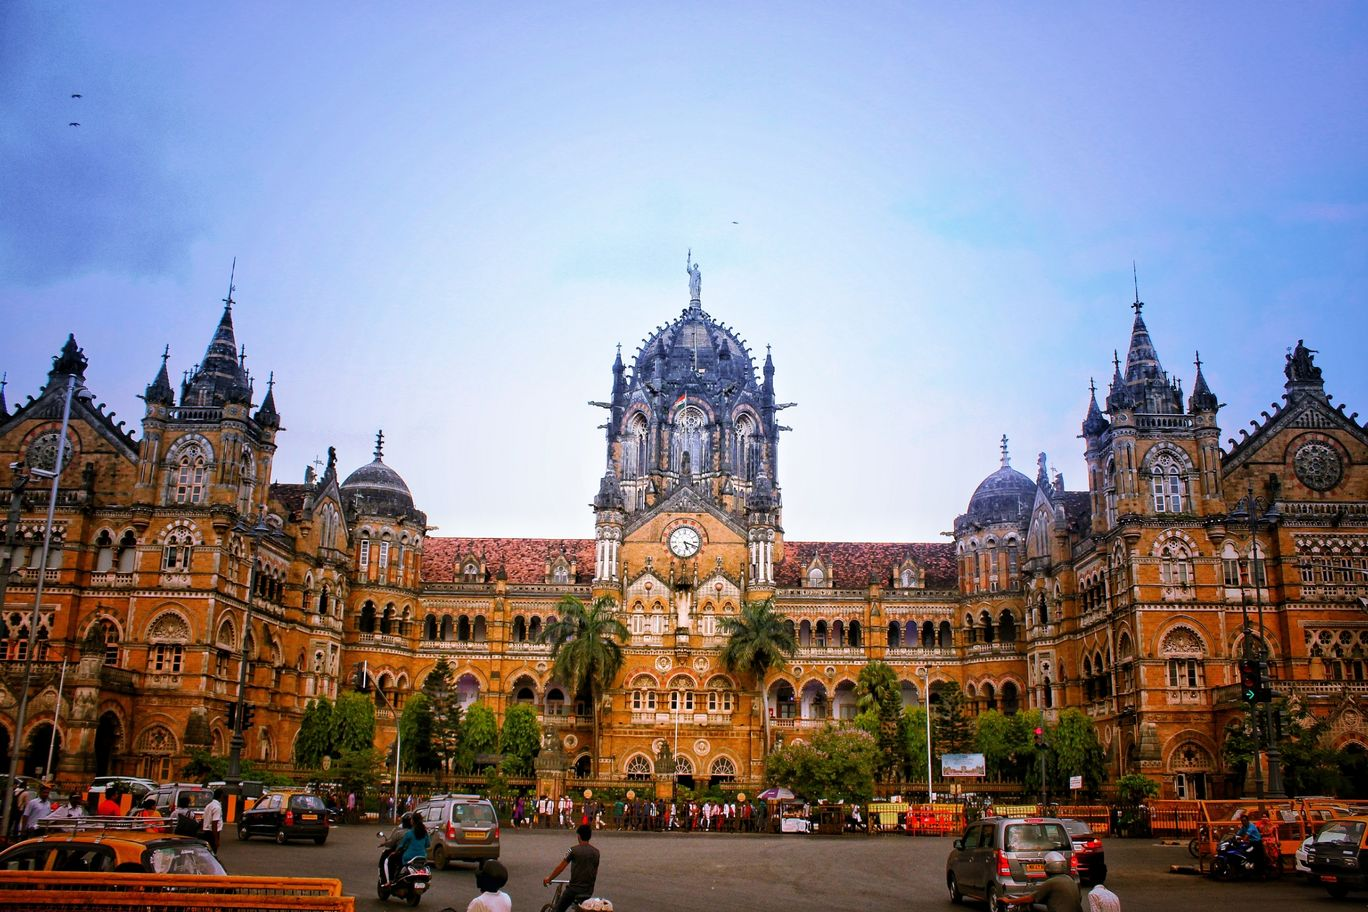 Photo of Chhatrapati Shivaji Terminus By Bhavin Patel